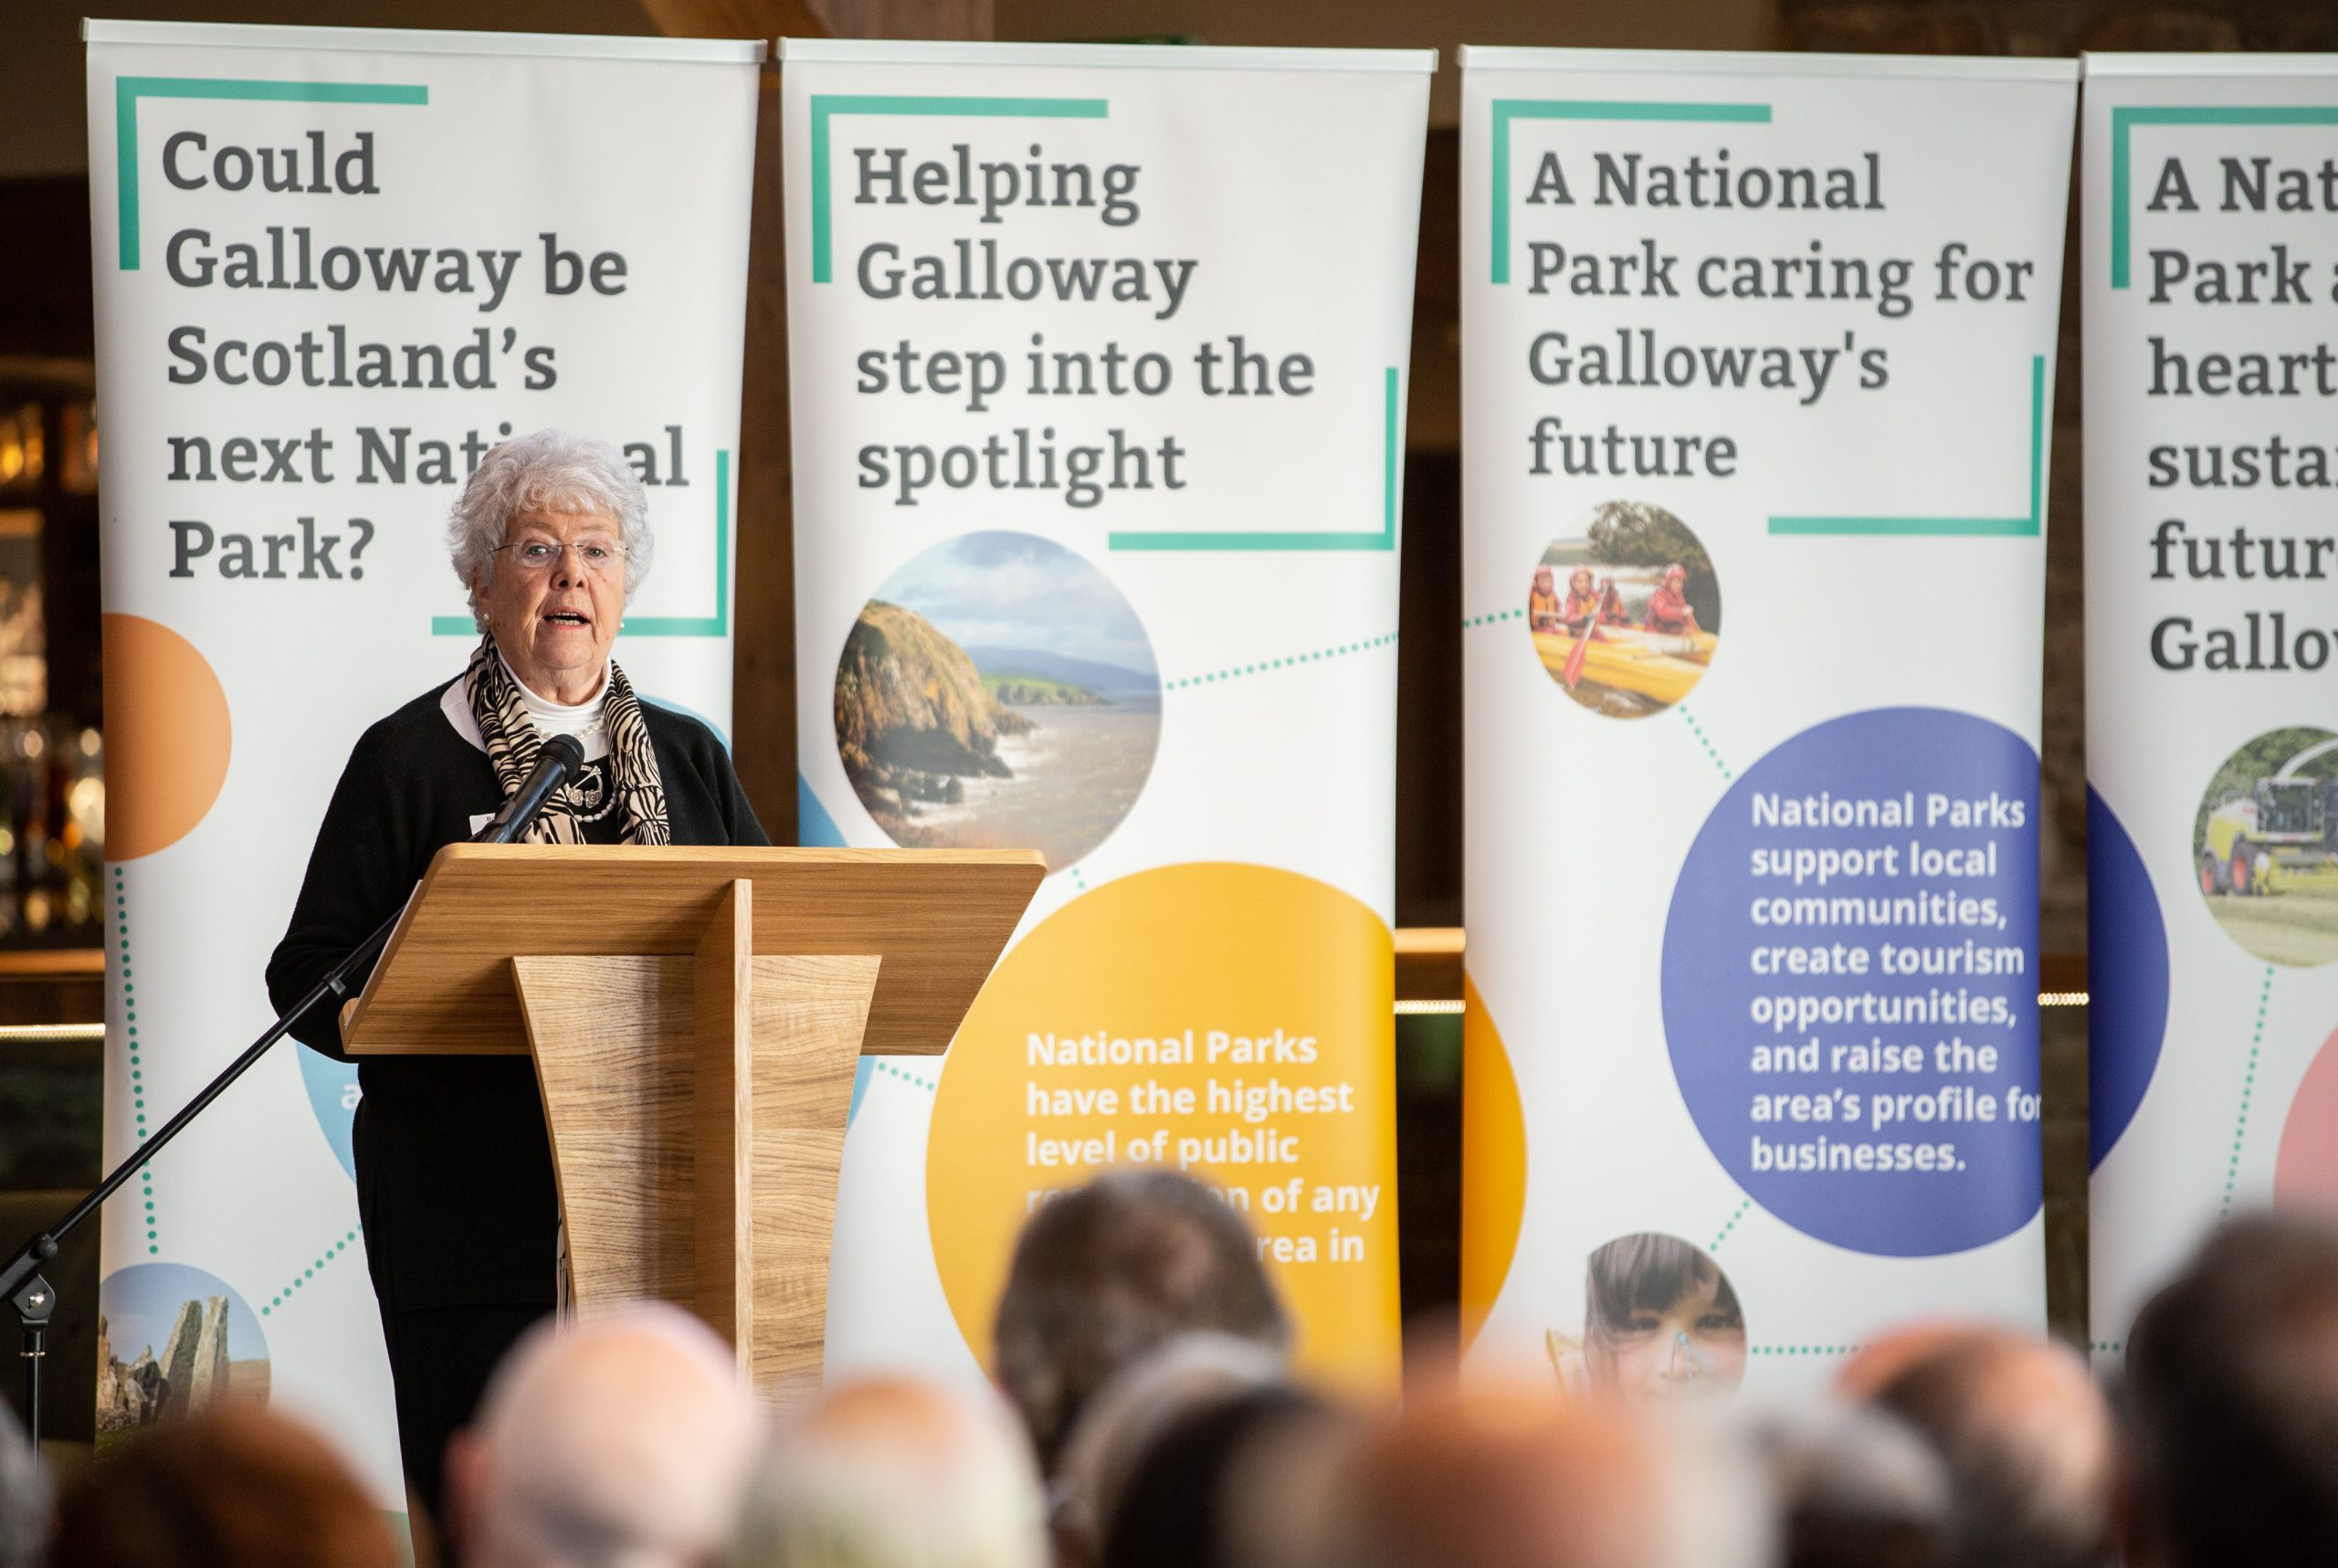 Huge support for national park